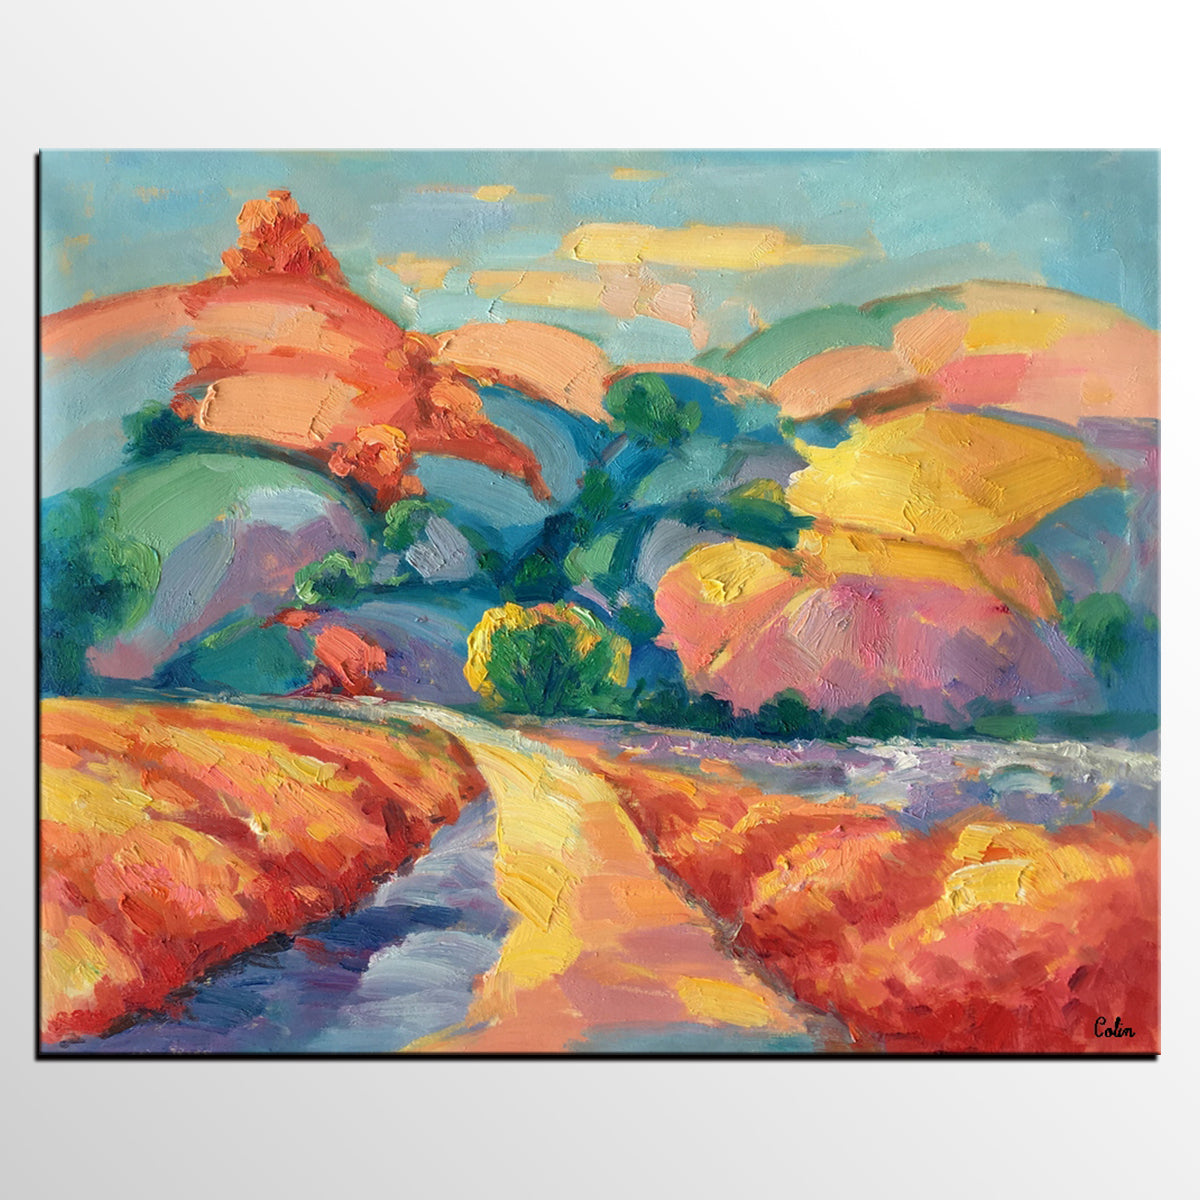 Abstract Impasto Art, Canvas Wall Art for Sale, Mountain Landscape Painting, Heavy Texture Oil Painting